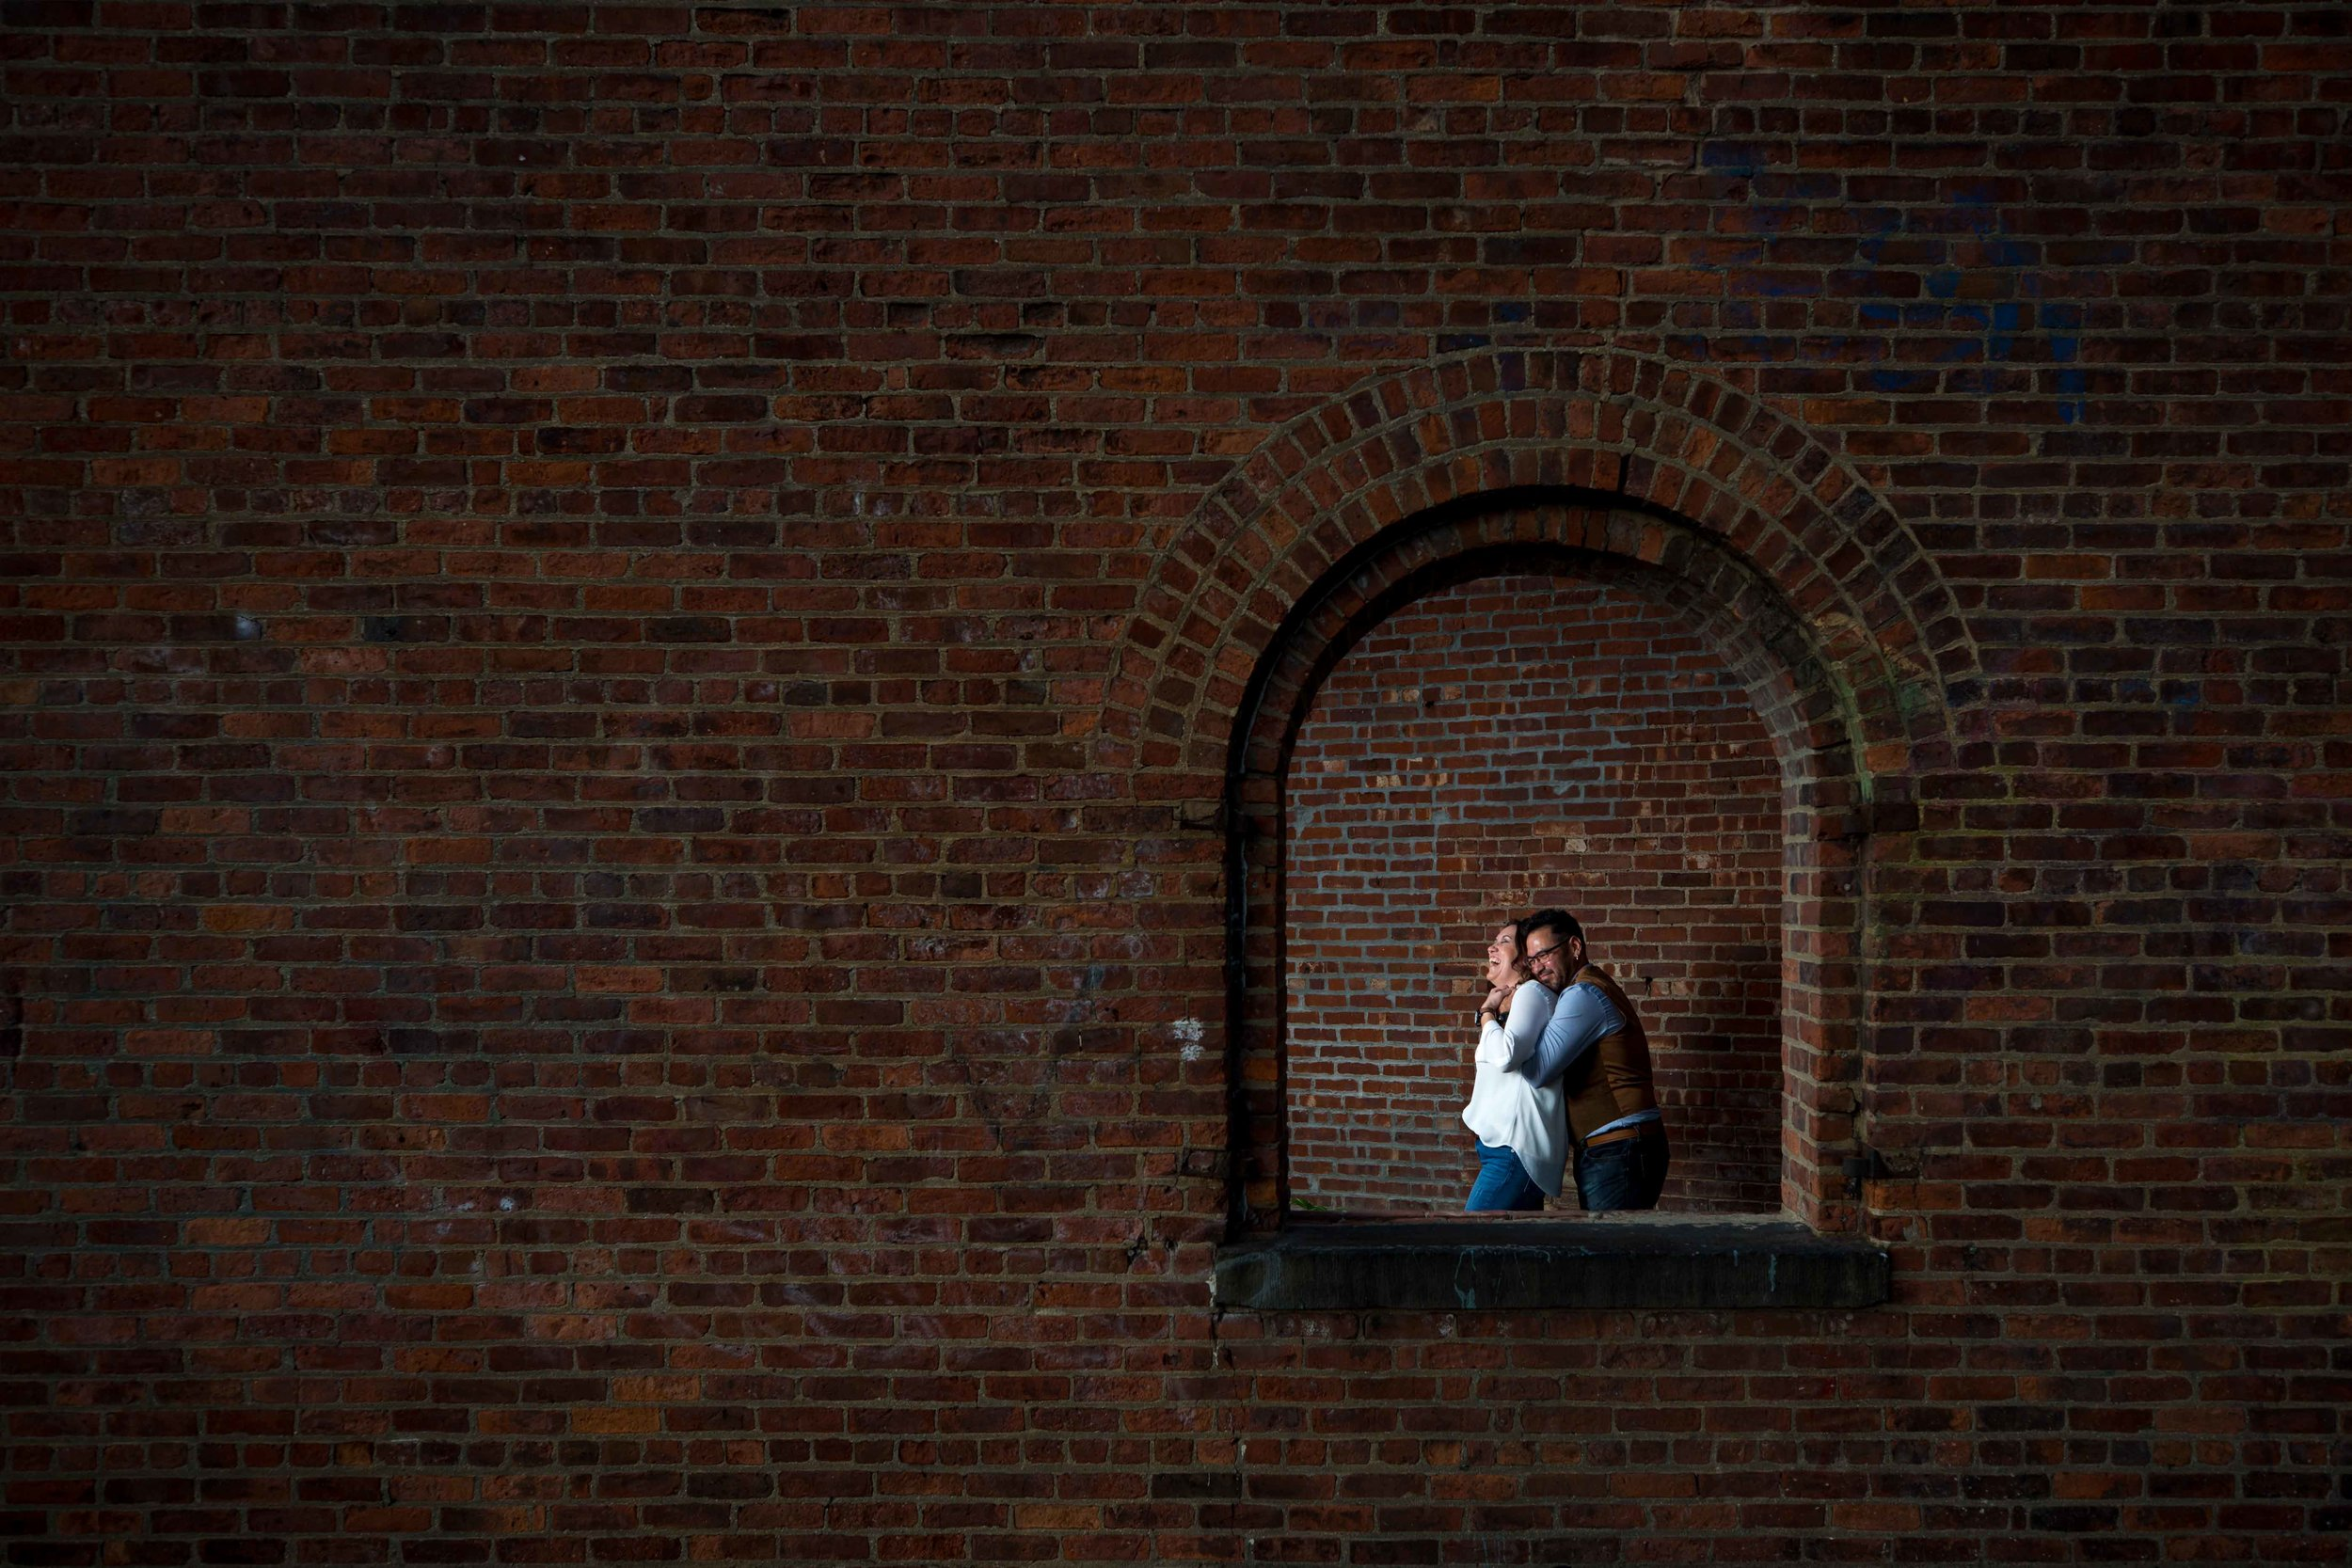 DUMBO Brooklyn Bridge Heights Promenade Anniversary Photo Shoot Session NYC Wedding Photographer-15.jpg